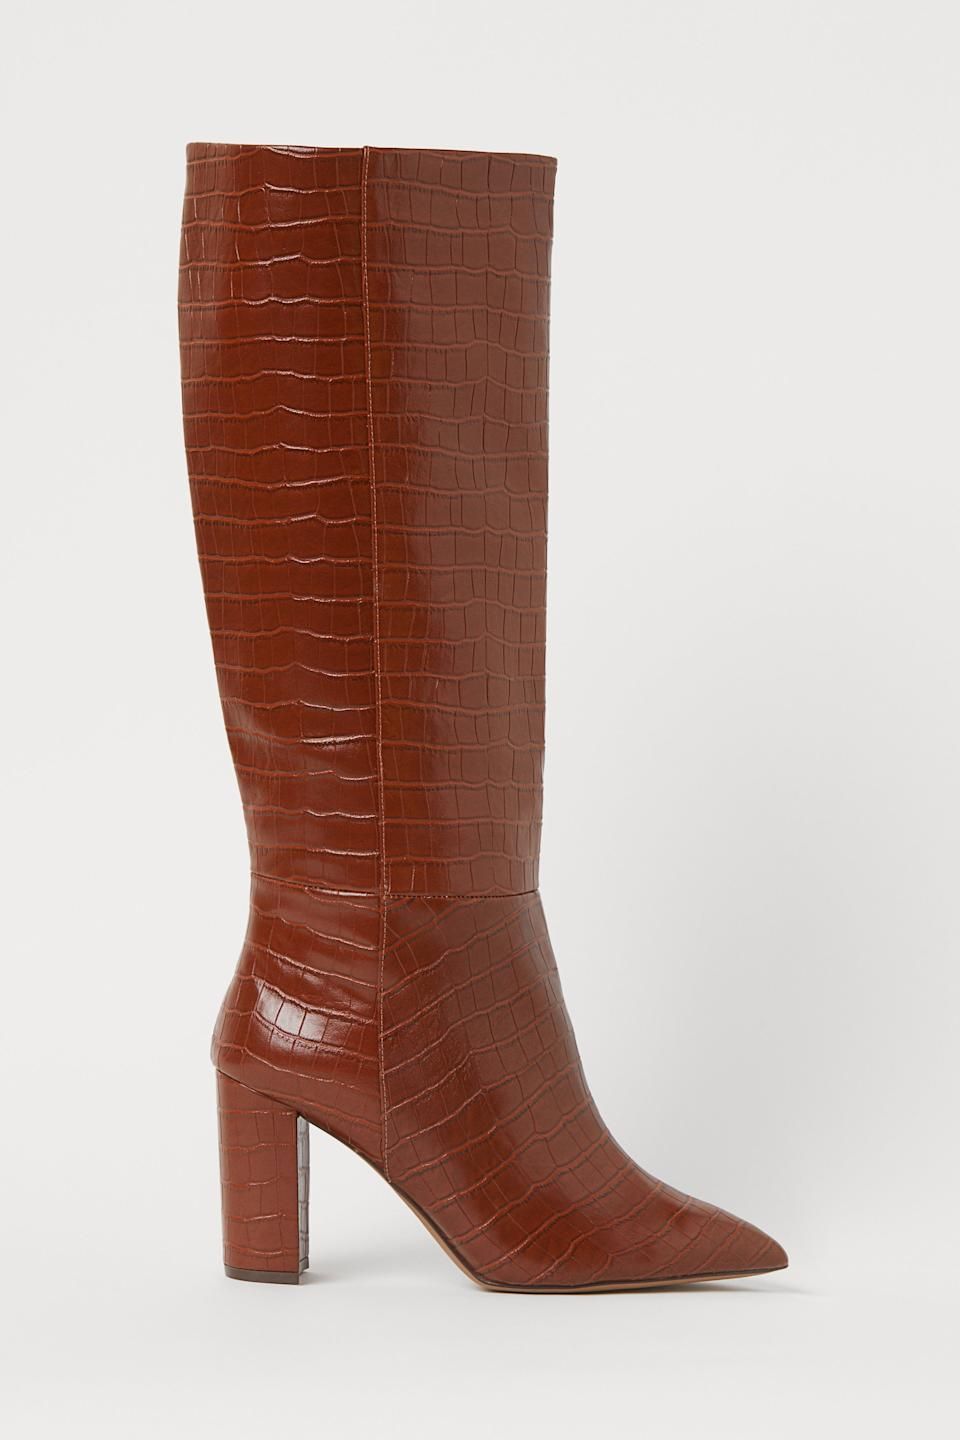 """<strong>— PAID —</strong><br><br>This faux-leather pair has a satin lining made from recycled polyester, which makes for an easy-on, easy-off experience — <em>and</em> feeling good about your fashion choices.<br><br><strong>H&M</strong> Crocodile-patterned Boots, $, available at <a href=""""https://go.skimresources.com/?id=30283X879131&url=https%3A%2F%2Fwww2.hm.com%2Fen_us%2Fproductpage.0898886002.html"""" rel=""""nofollow noopener"""" target=""""_blank"""" data-ylk=""""slk:H&M"""" class=""""link rapid-noclick-resp"""">H&M</a>"""